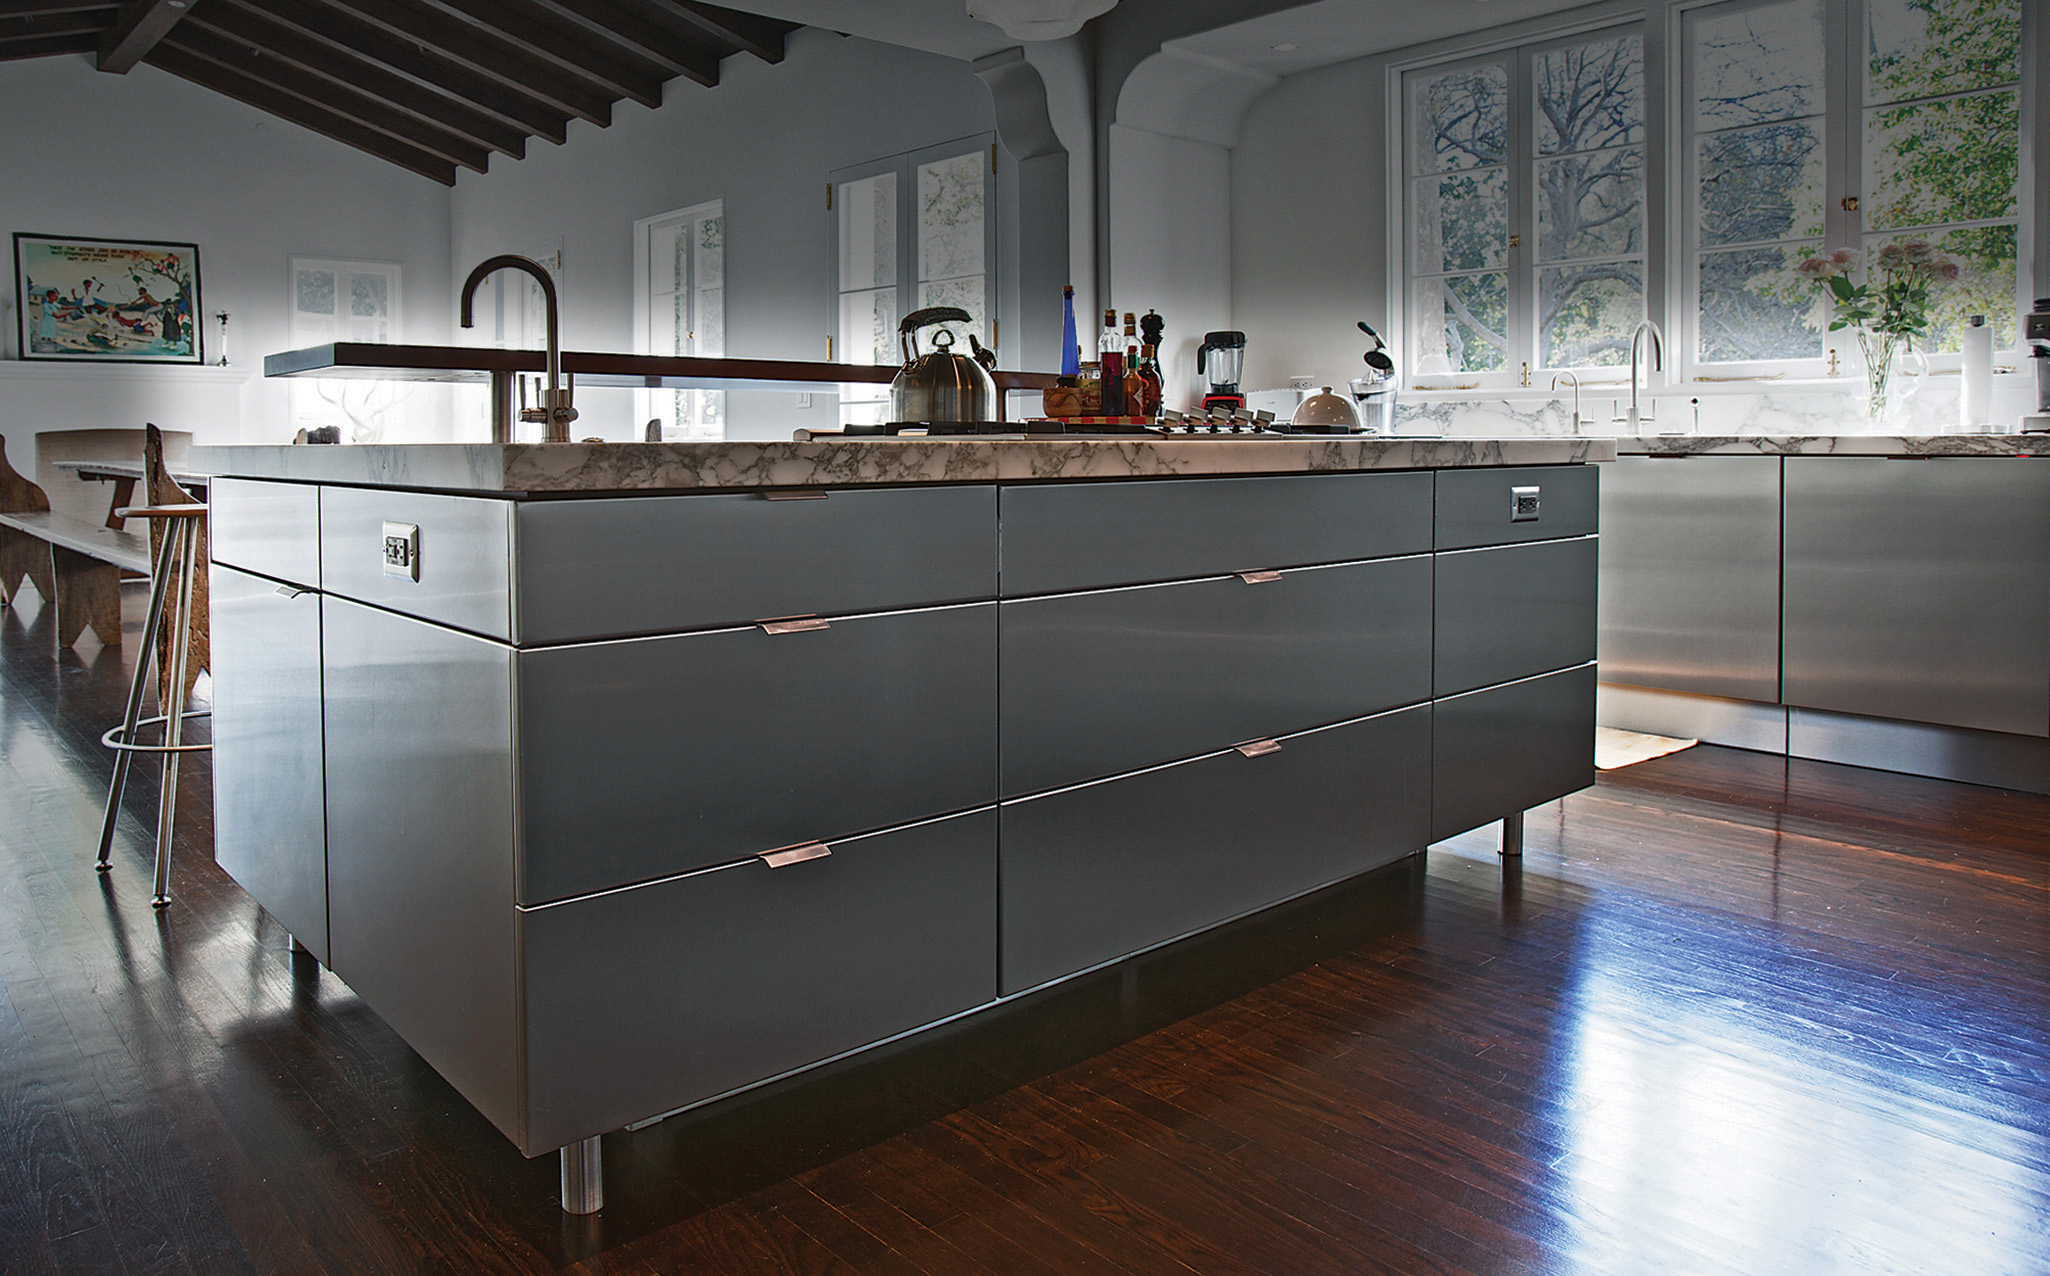 stainless steel kitchen cabinets lasertron stainless steel cabinets. indoor stainess steel kitchens ABLUSQL